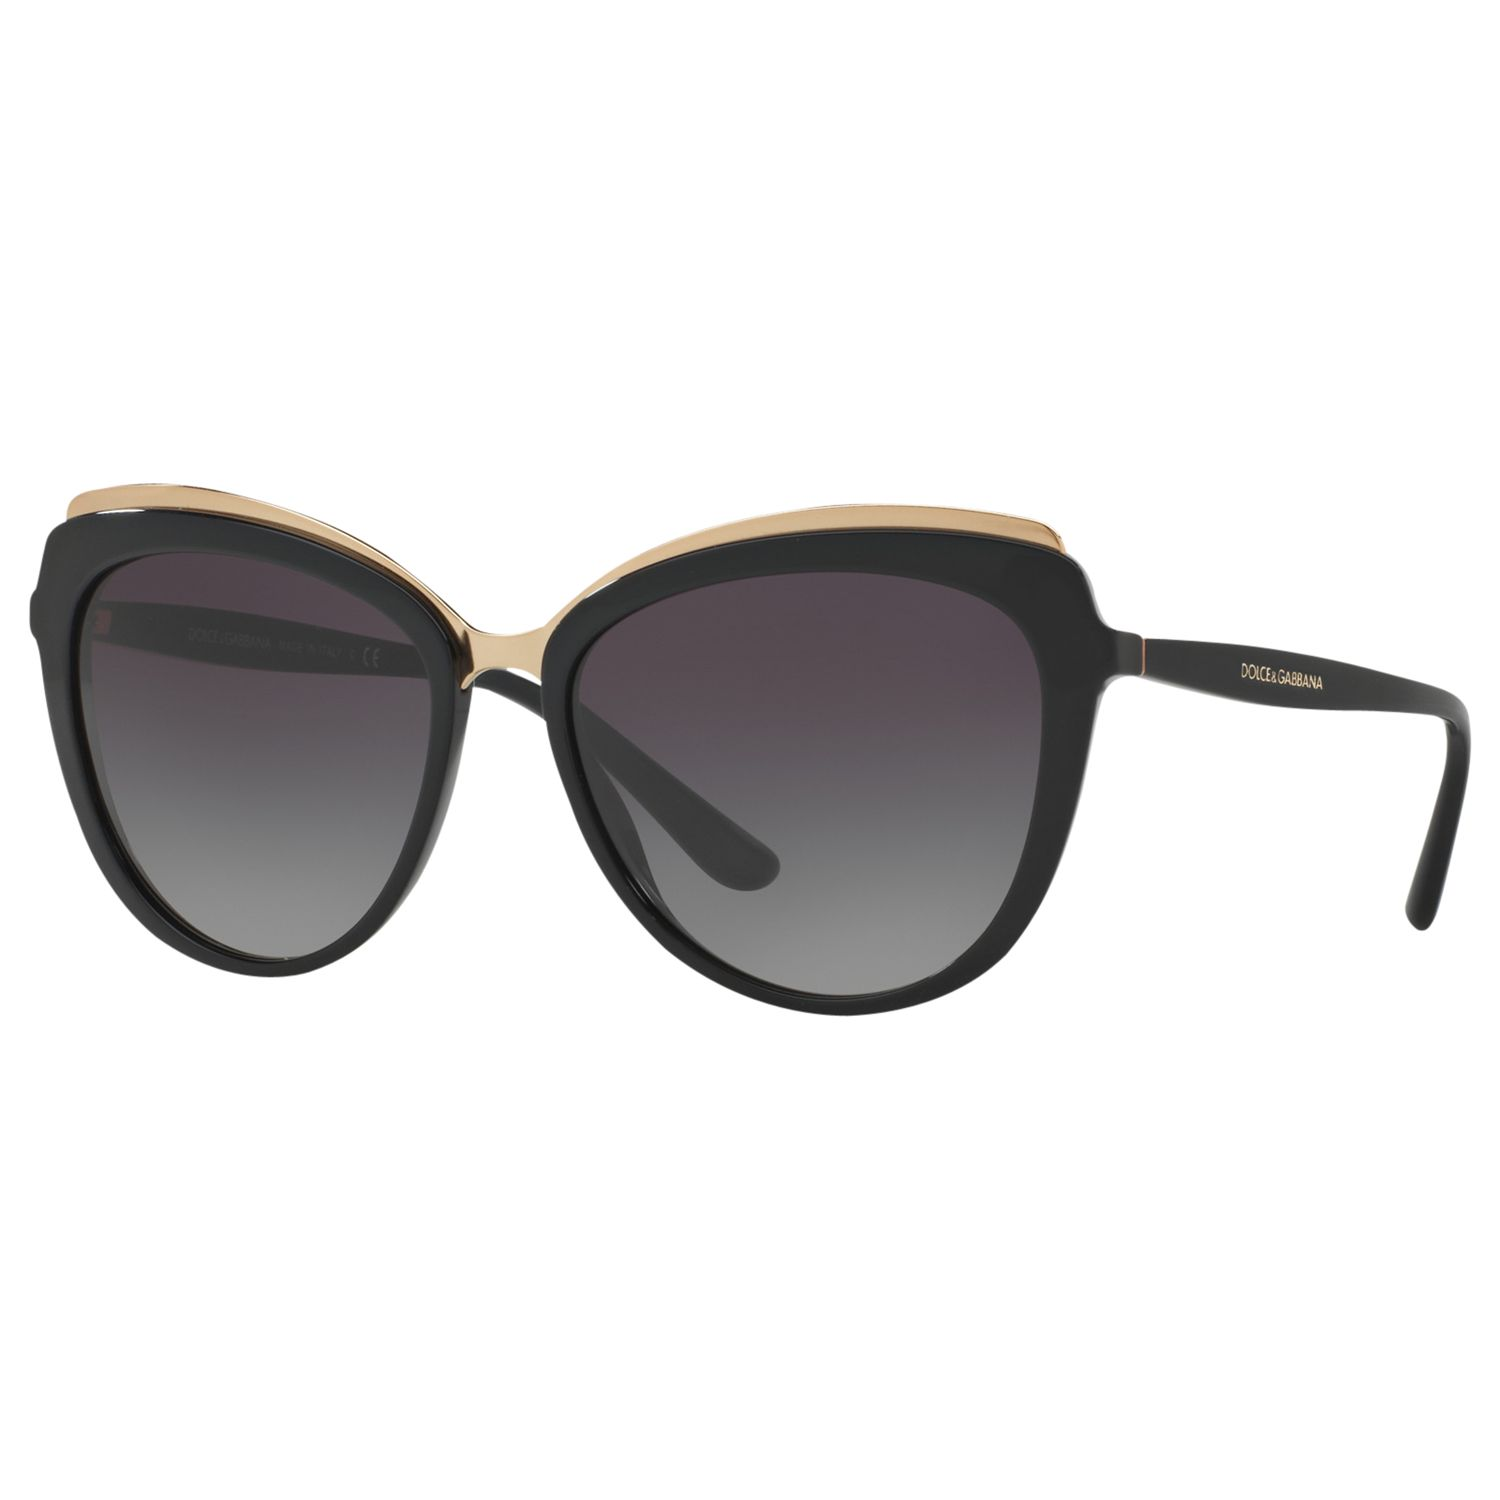 Dolce & Gabbana Dolce & Gabbana DG4304 Cat's Eye Sunglasses